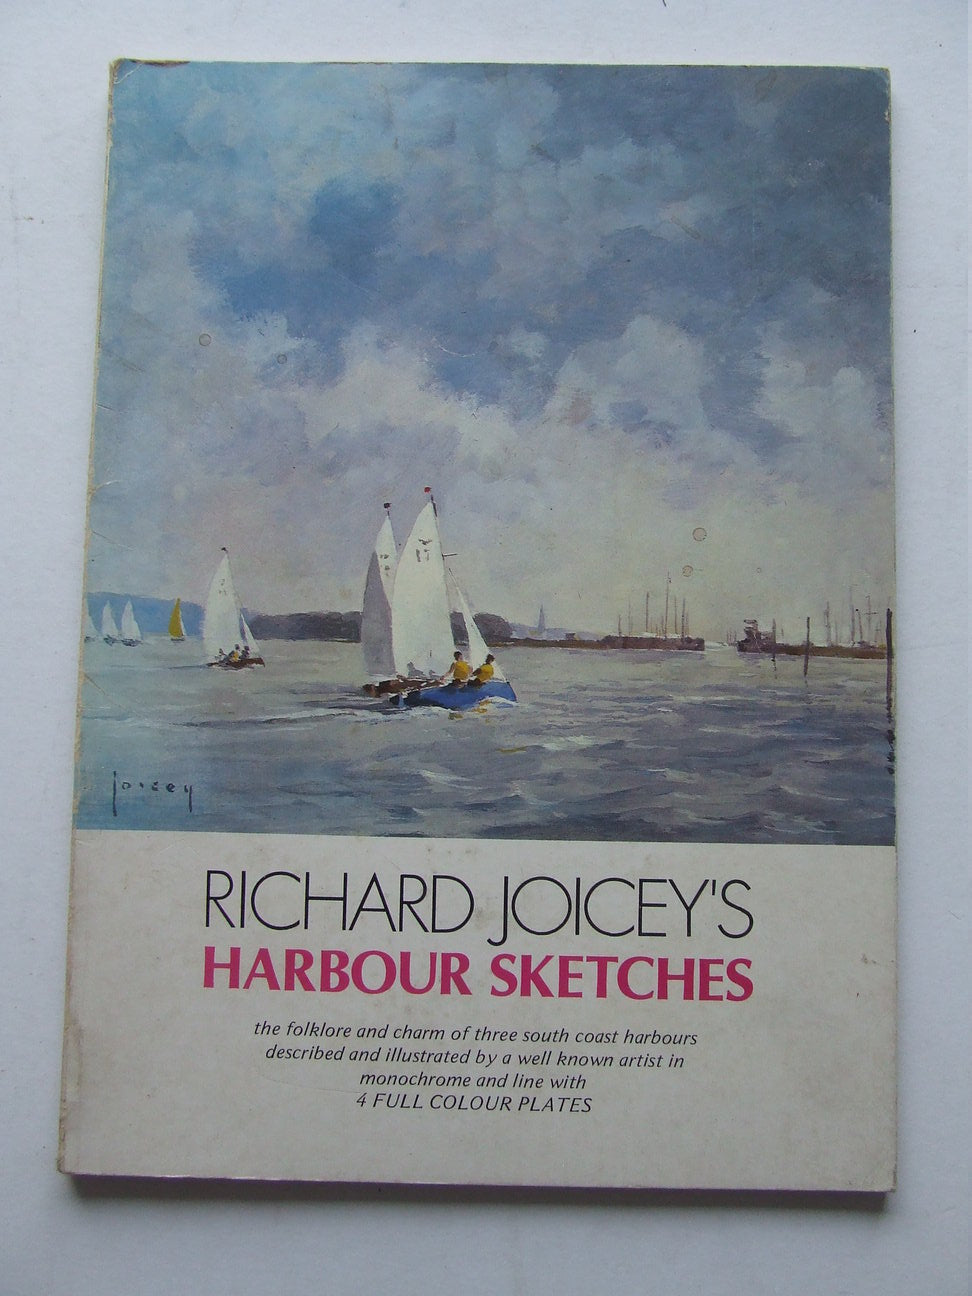 Richard Joicey's Harbour Sketches with pen and brush